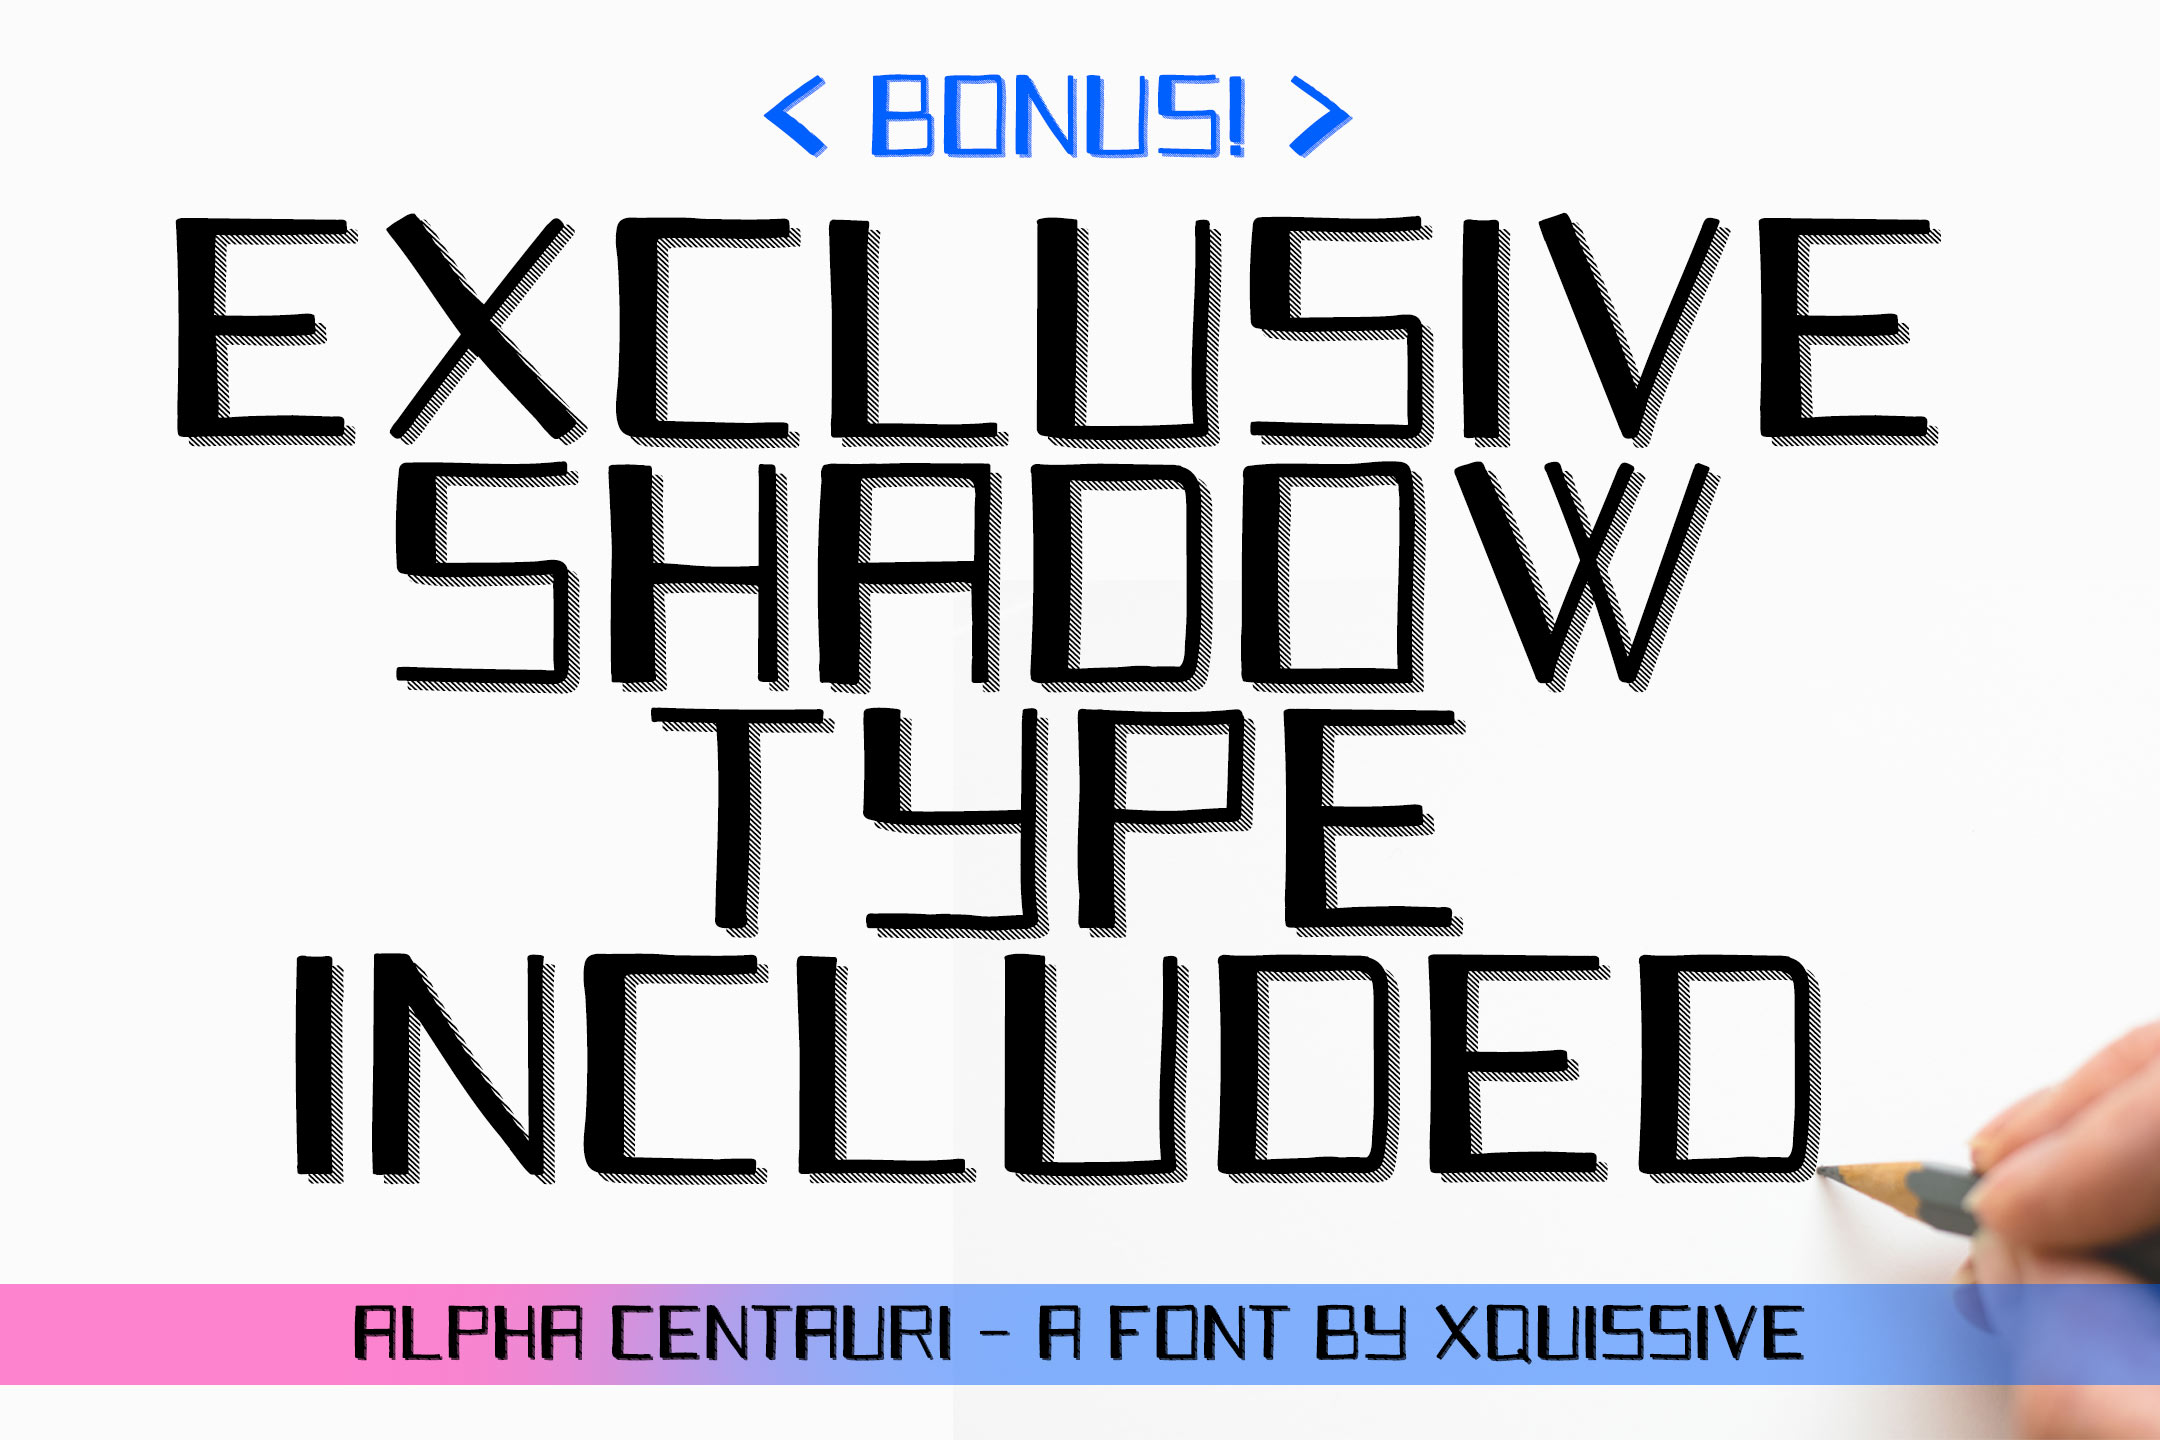 Alpha Centauri - Limited time offer! example image 2